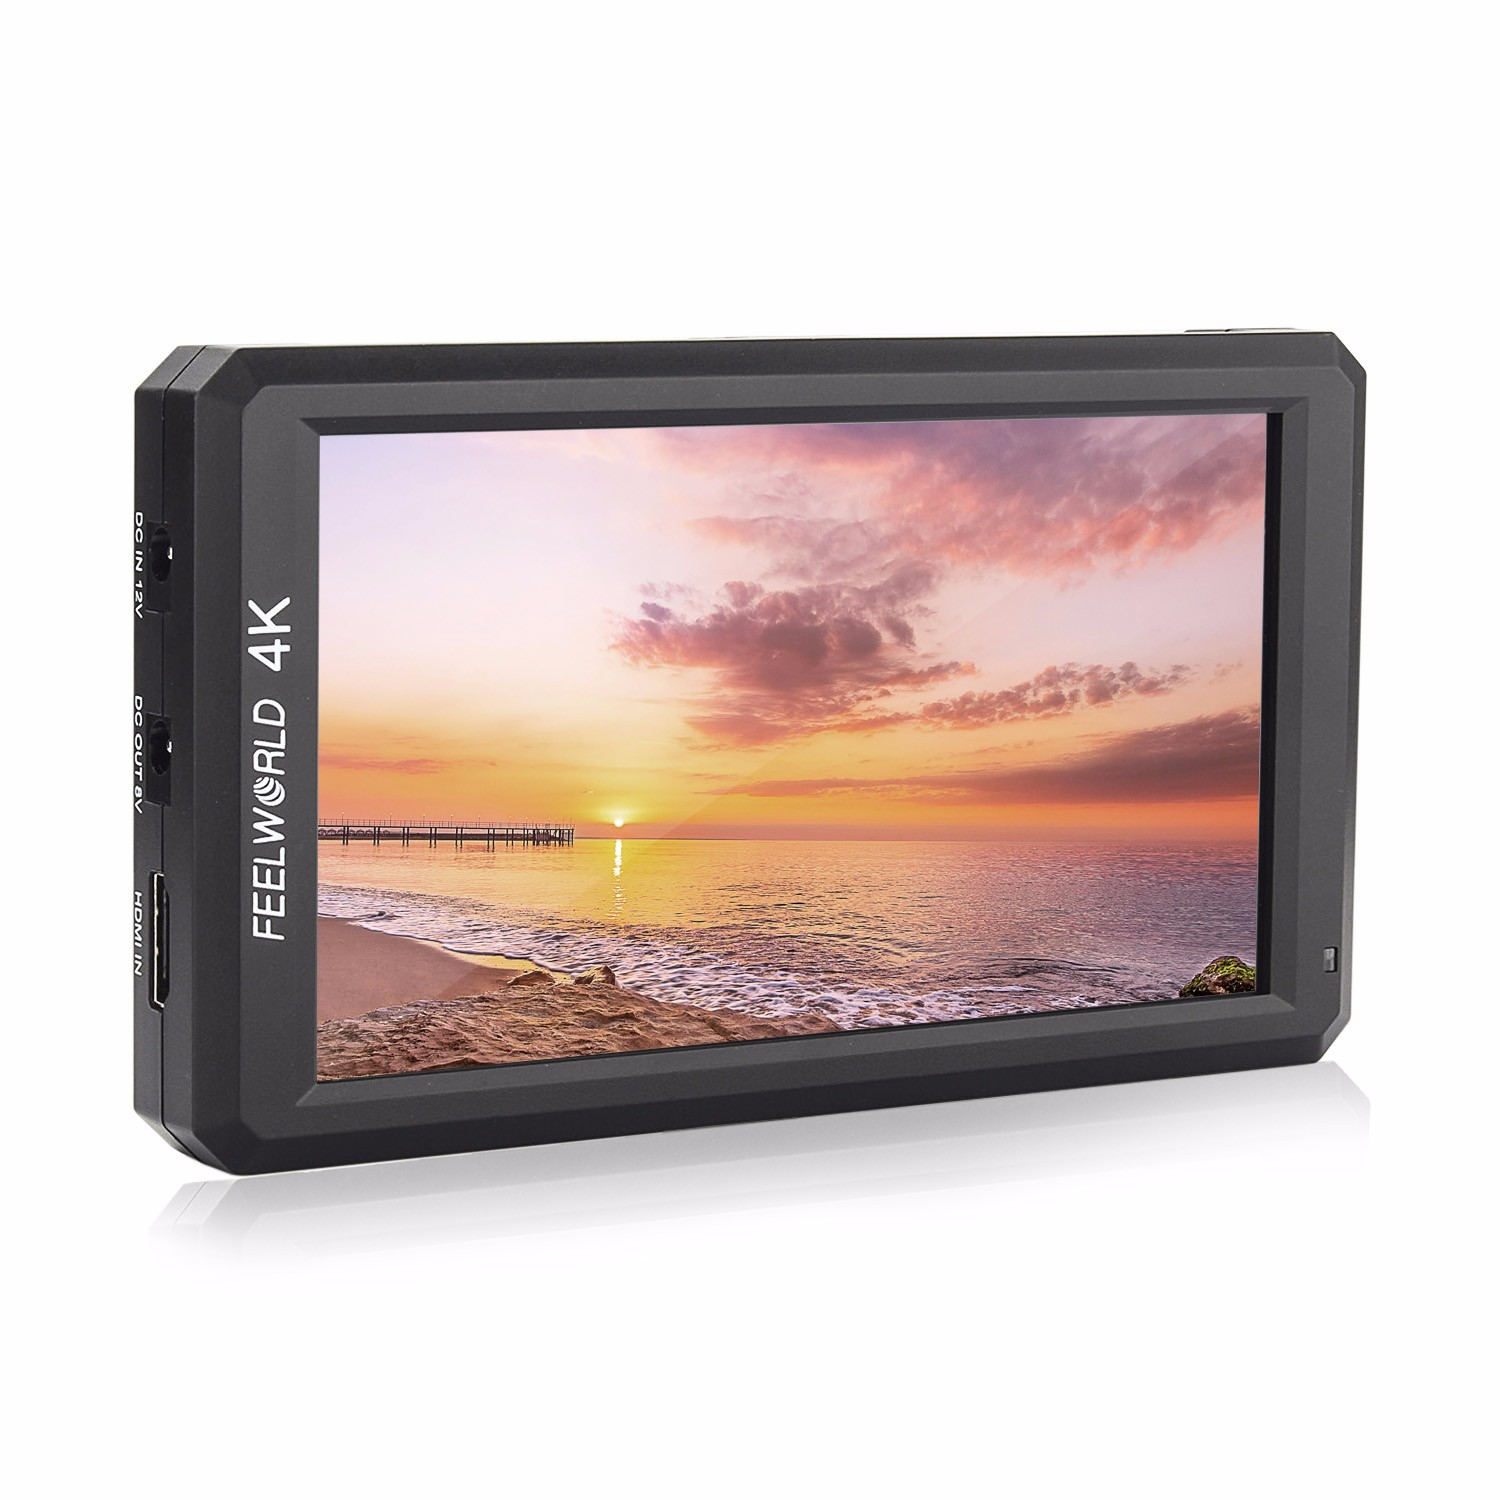 DHL Feelworld F6 Professional Grade 5.7 IPS 4K HDMI Camera-top Monitor for Camera/Video it CanPower for DSLR orMirrorlessCamera